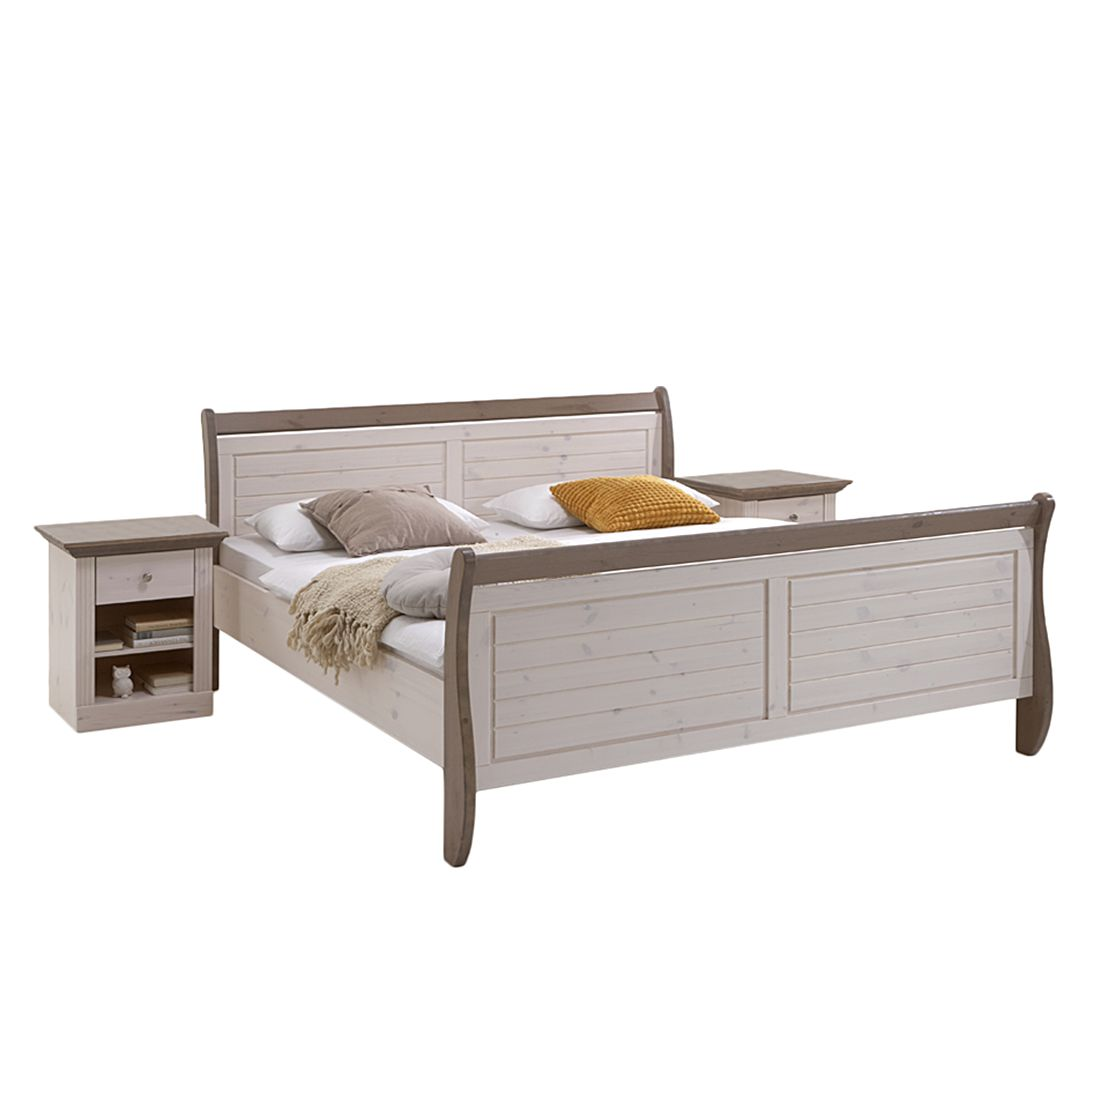 Schlafzimmer Set Home24 Schlafzimmerset Lyngby 4 Teilig